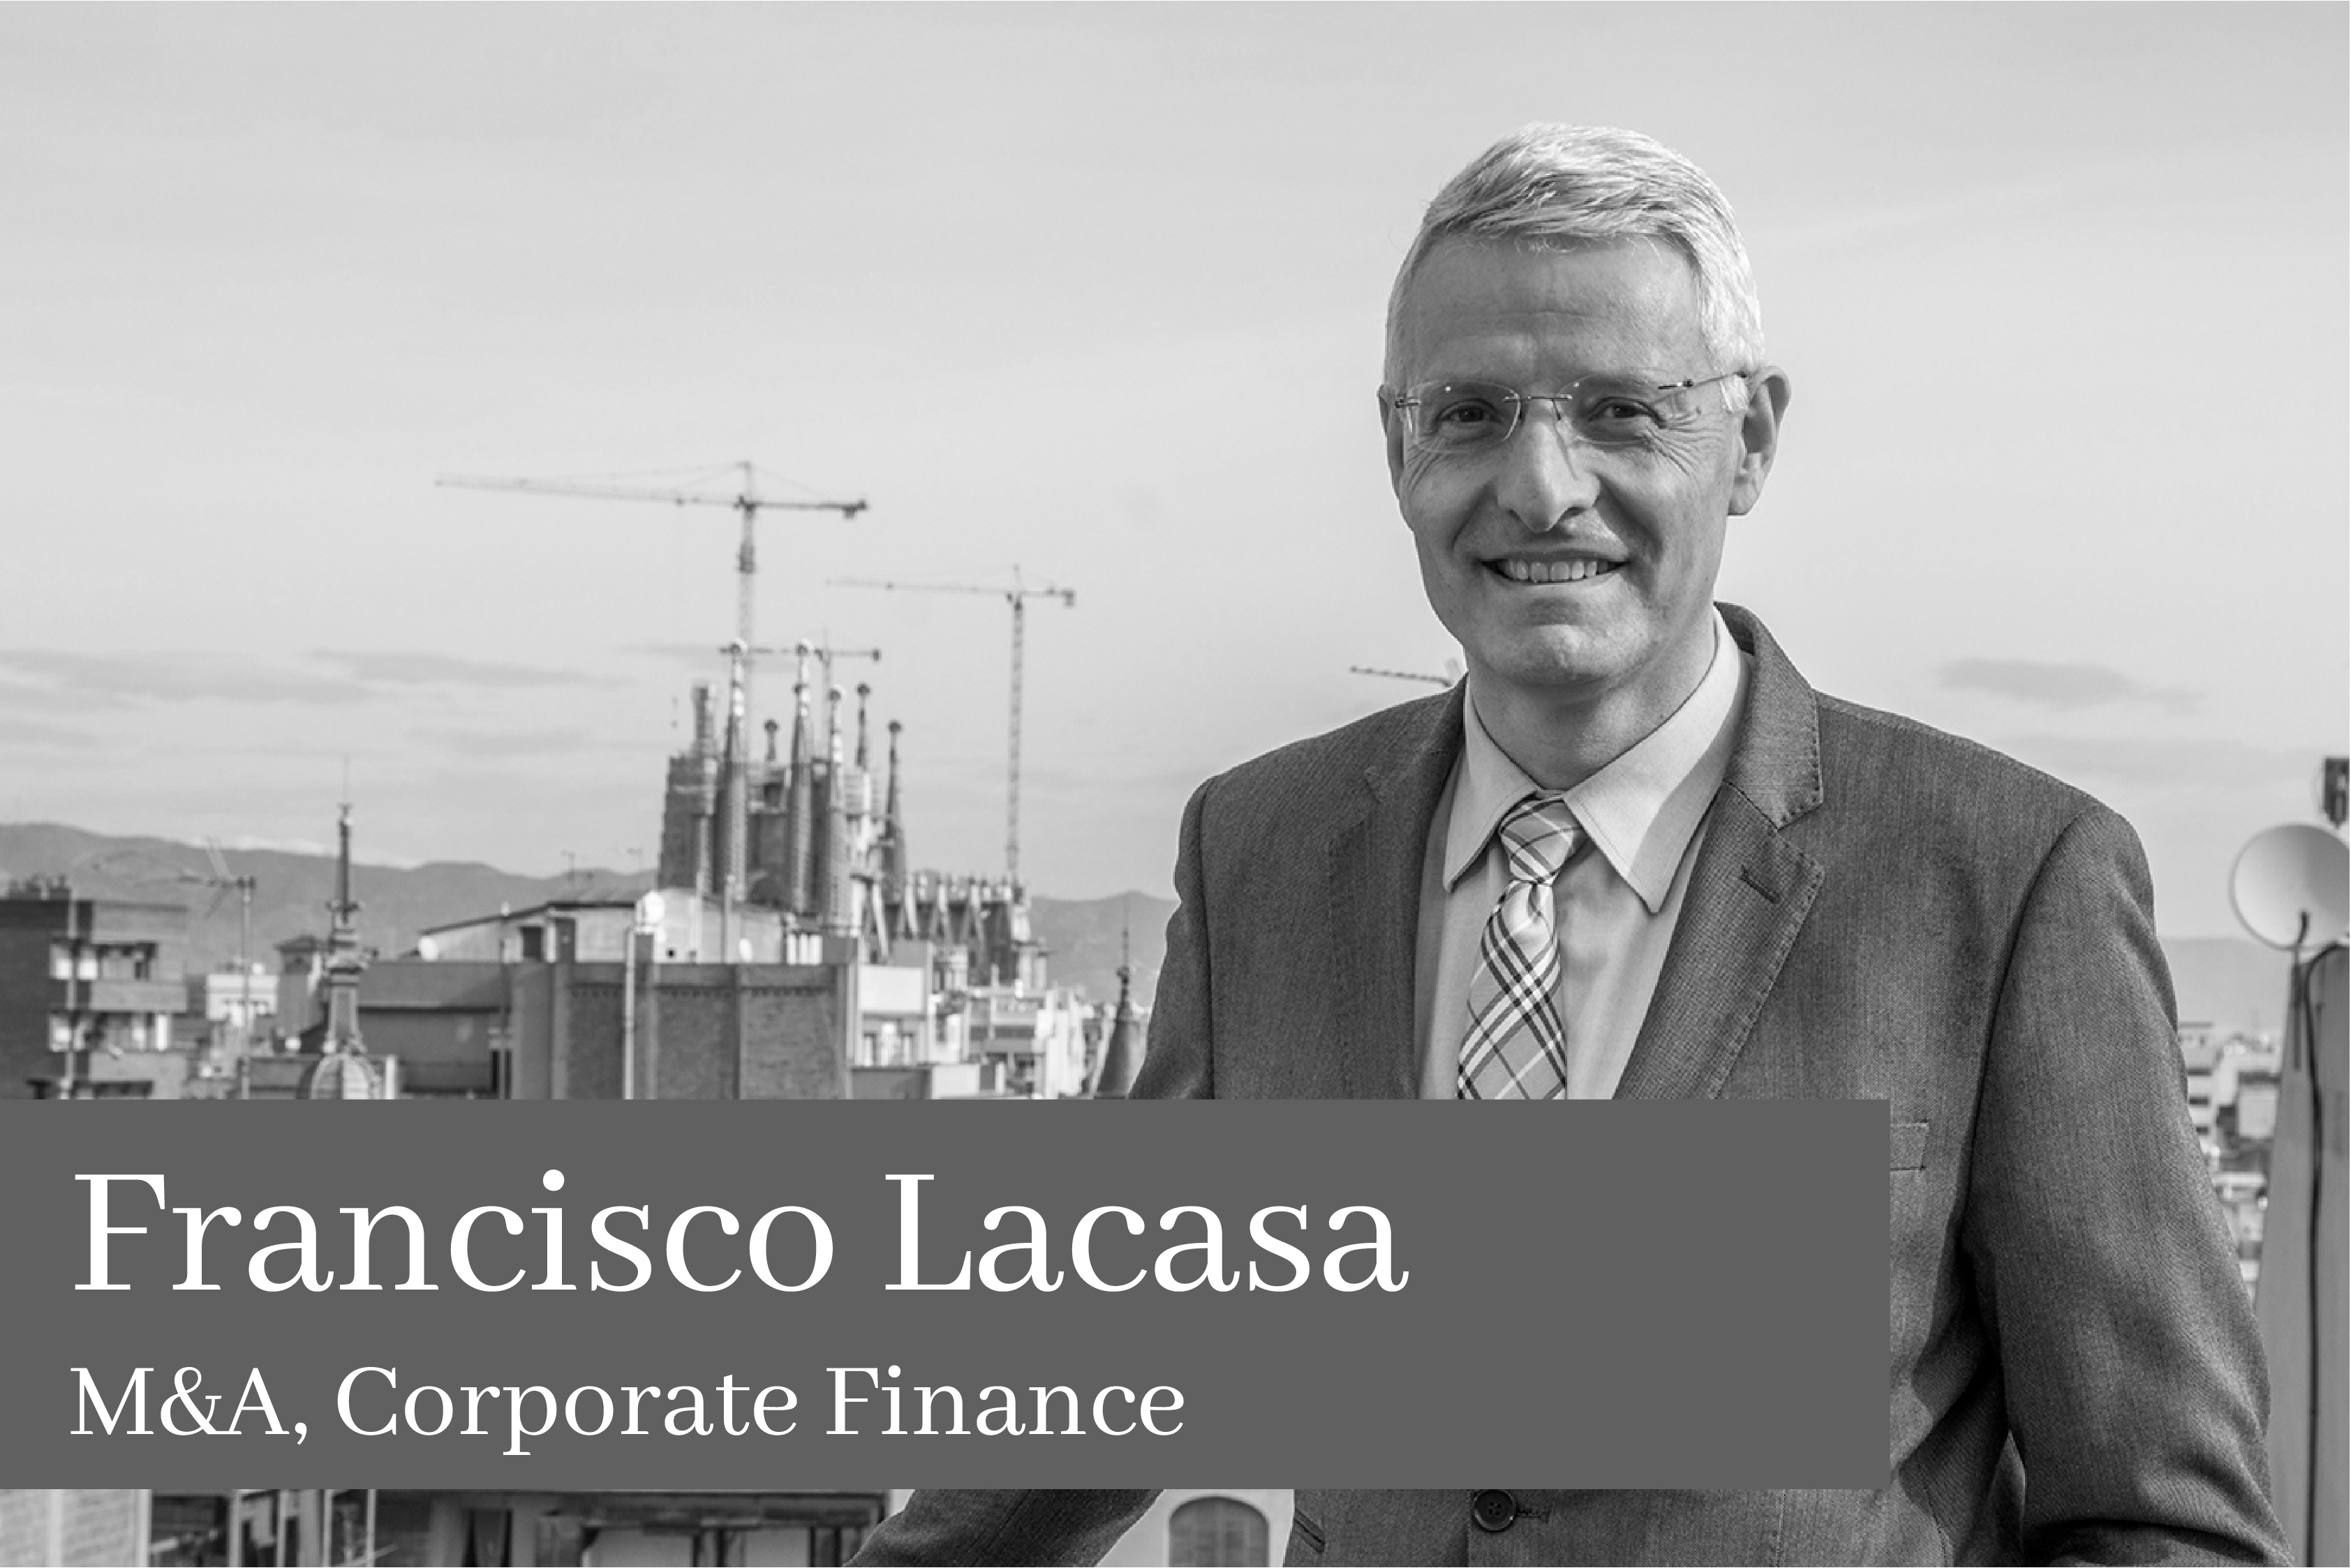 Francisco Lacasa M&A Corporate Finance